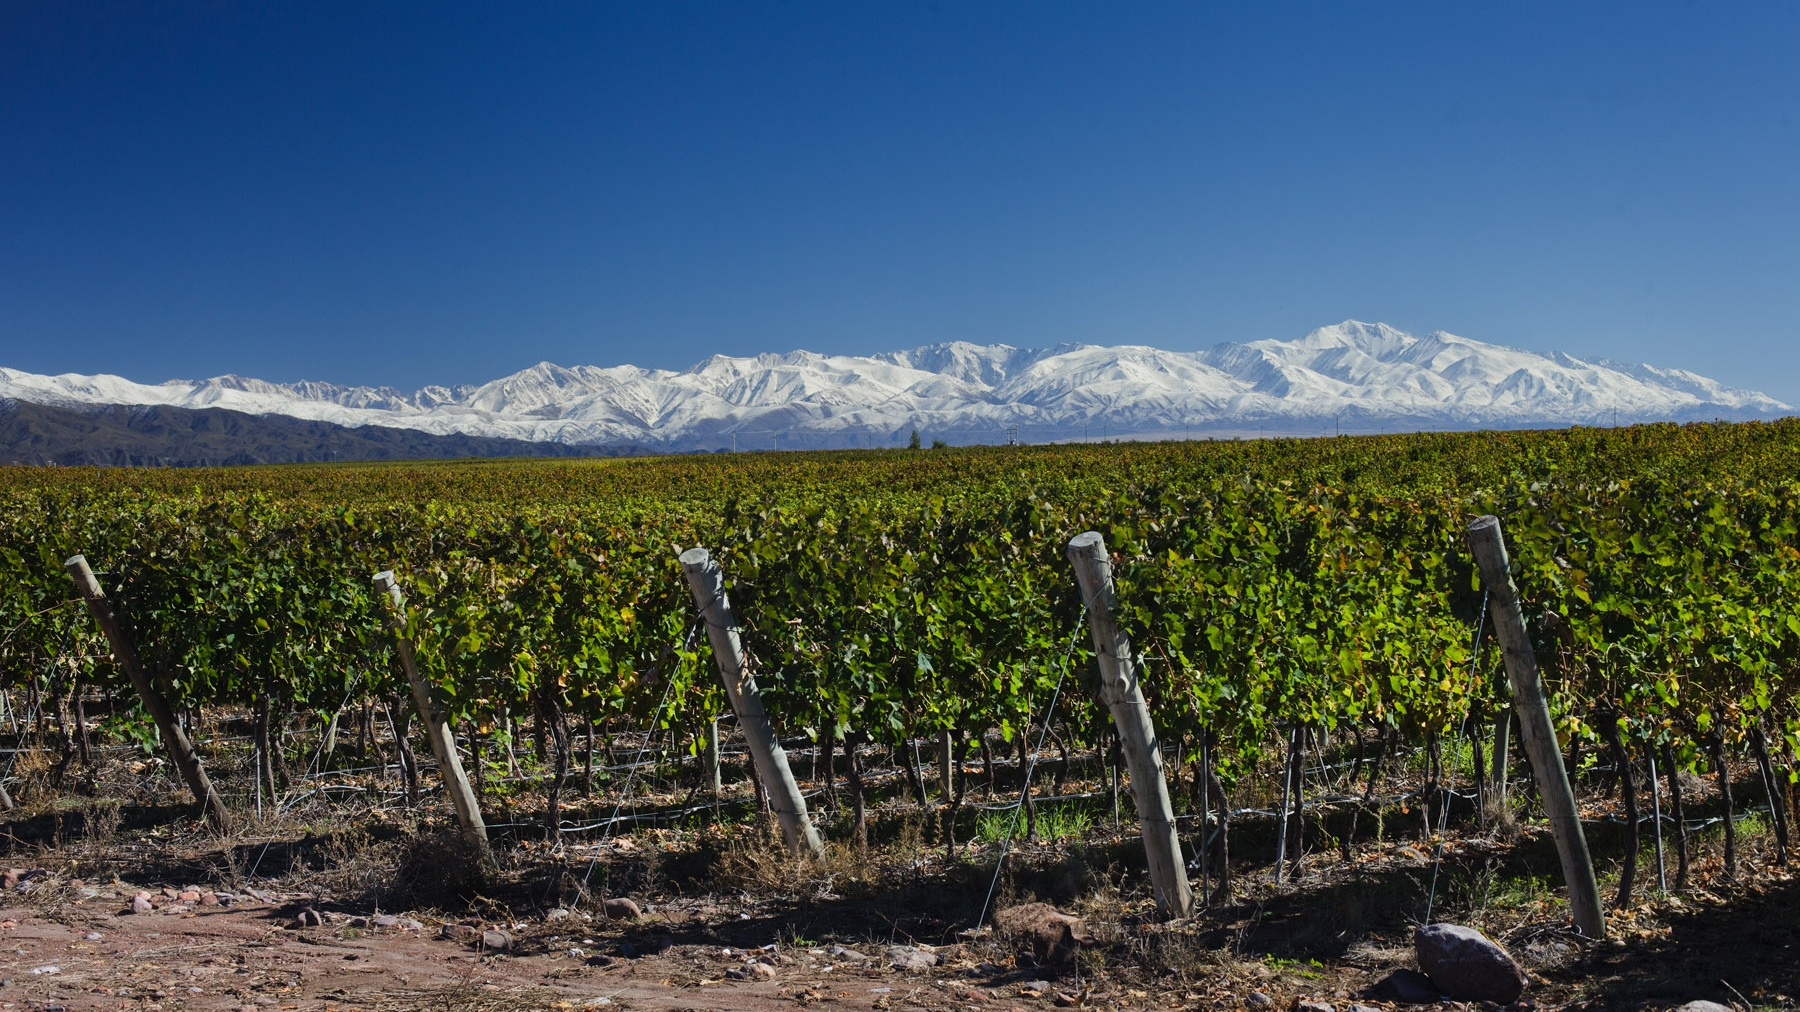 Viticulture - FINCA LOS ARBOLITOS | Chacayes | Uco Valley | Mendoza408 hectare vineyard producing high end grapes for Argentina's best wines